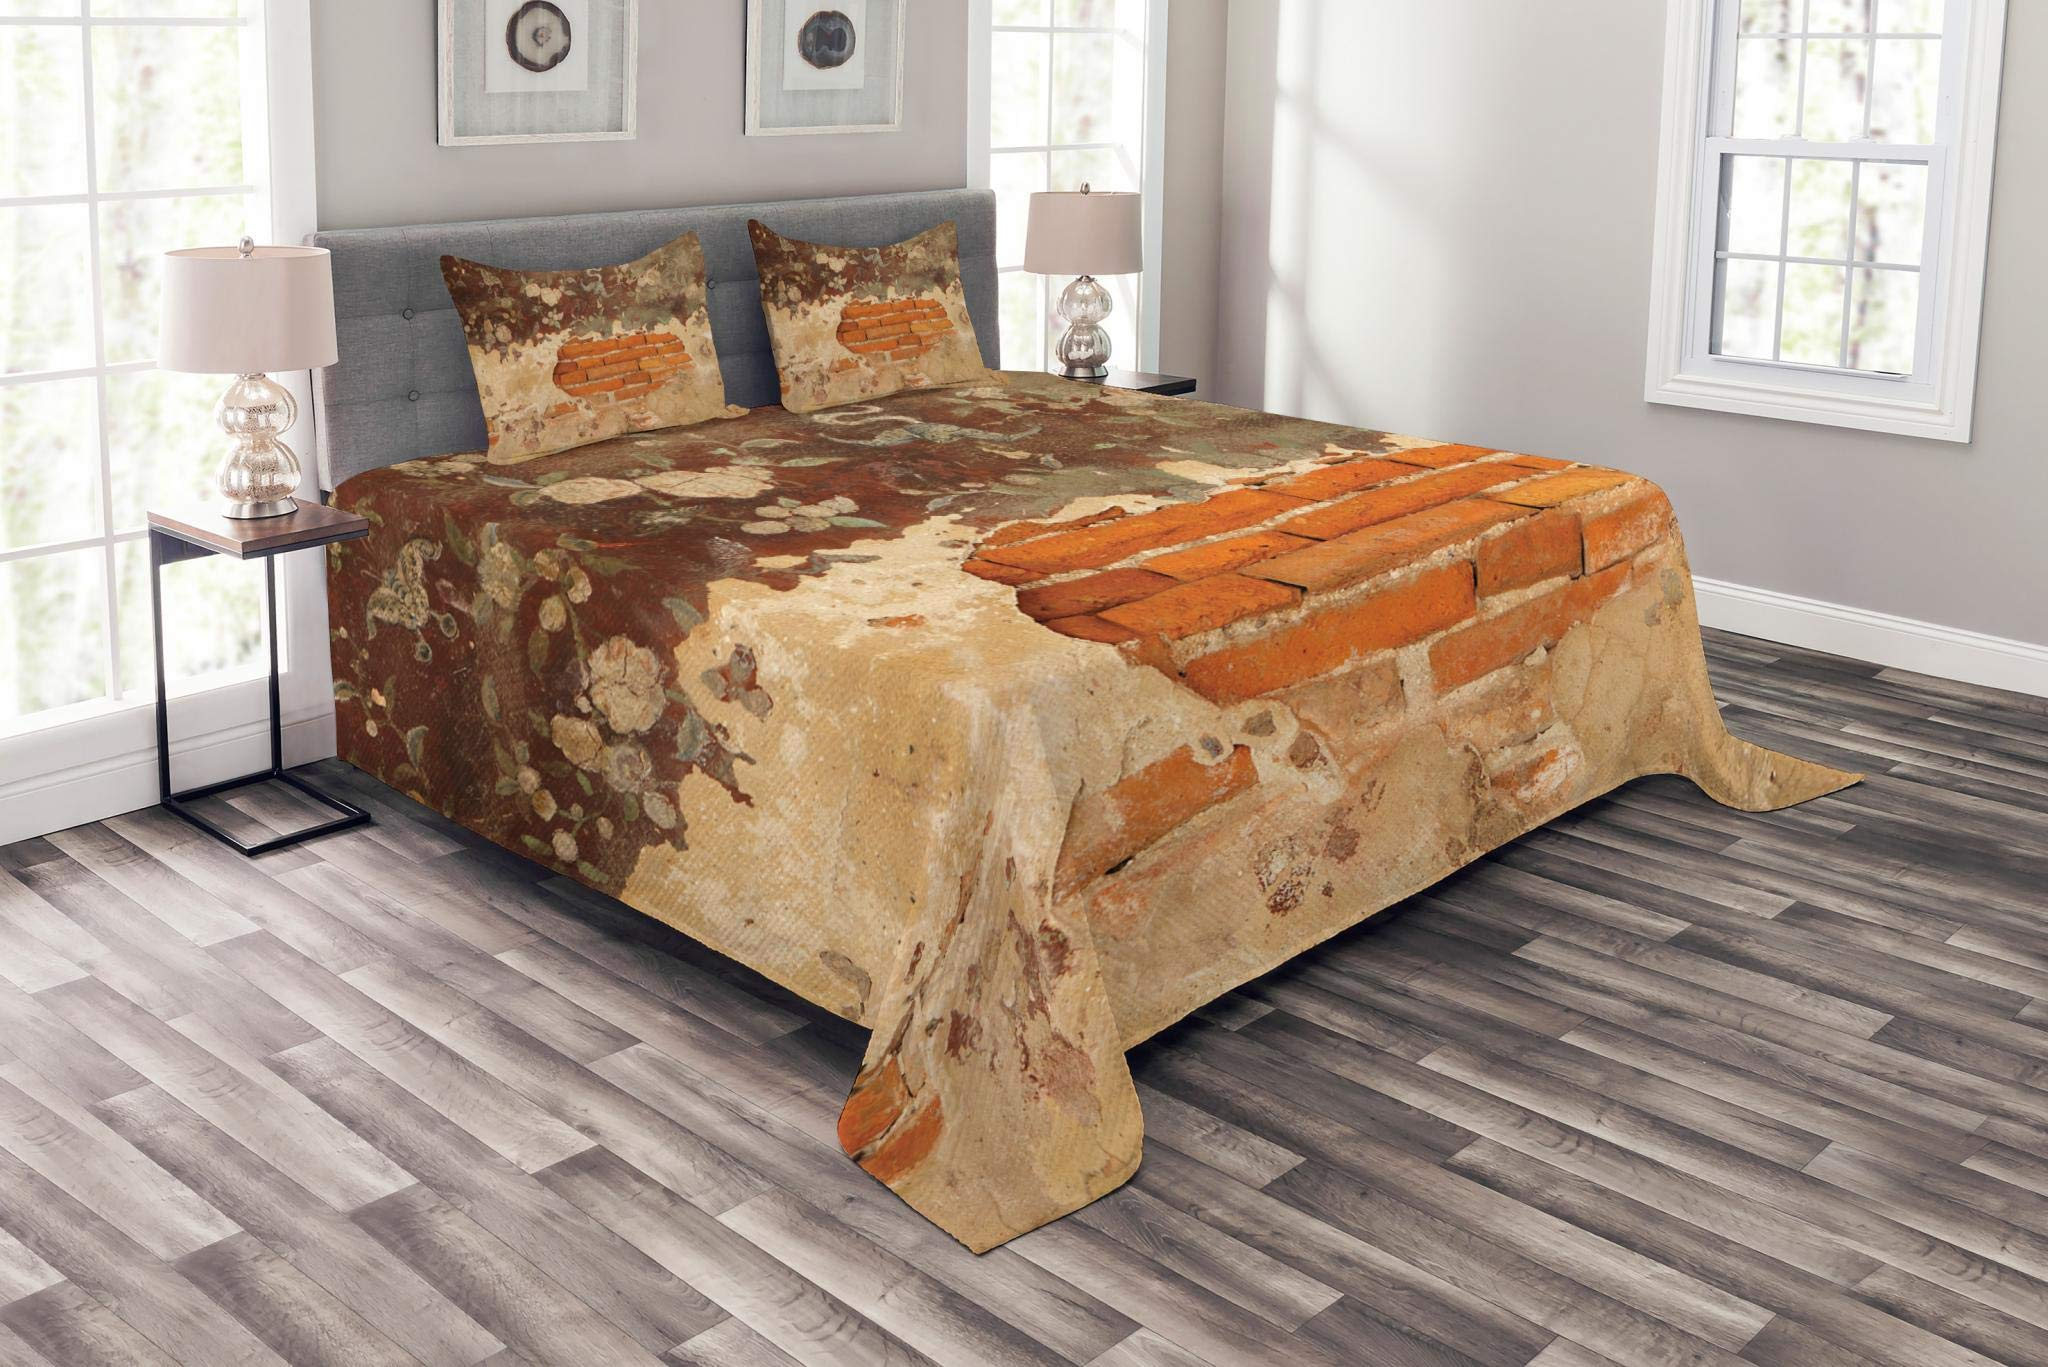 Lunarable Antique Bedspread Set King Size, Old Historical Floral Mural Painting on A Wall Concrete Bricks Rustic Design, Decorative Quilted 3 Piece Coverlet Set with 2 Pillow Shams, Orange Beige